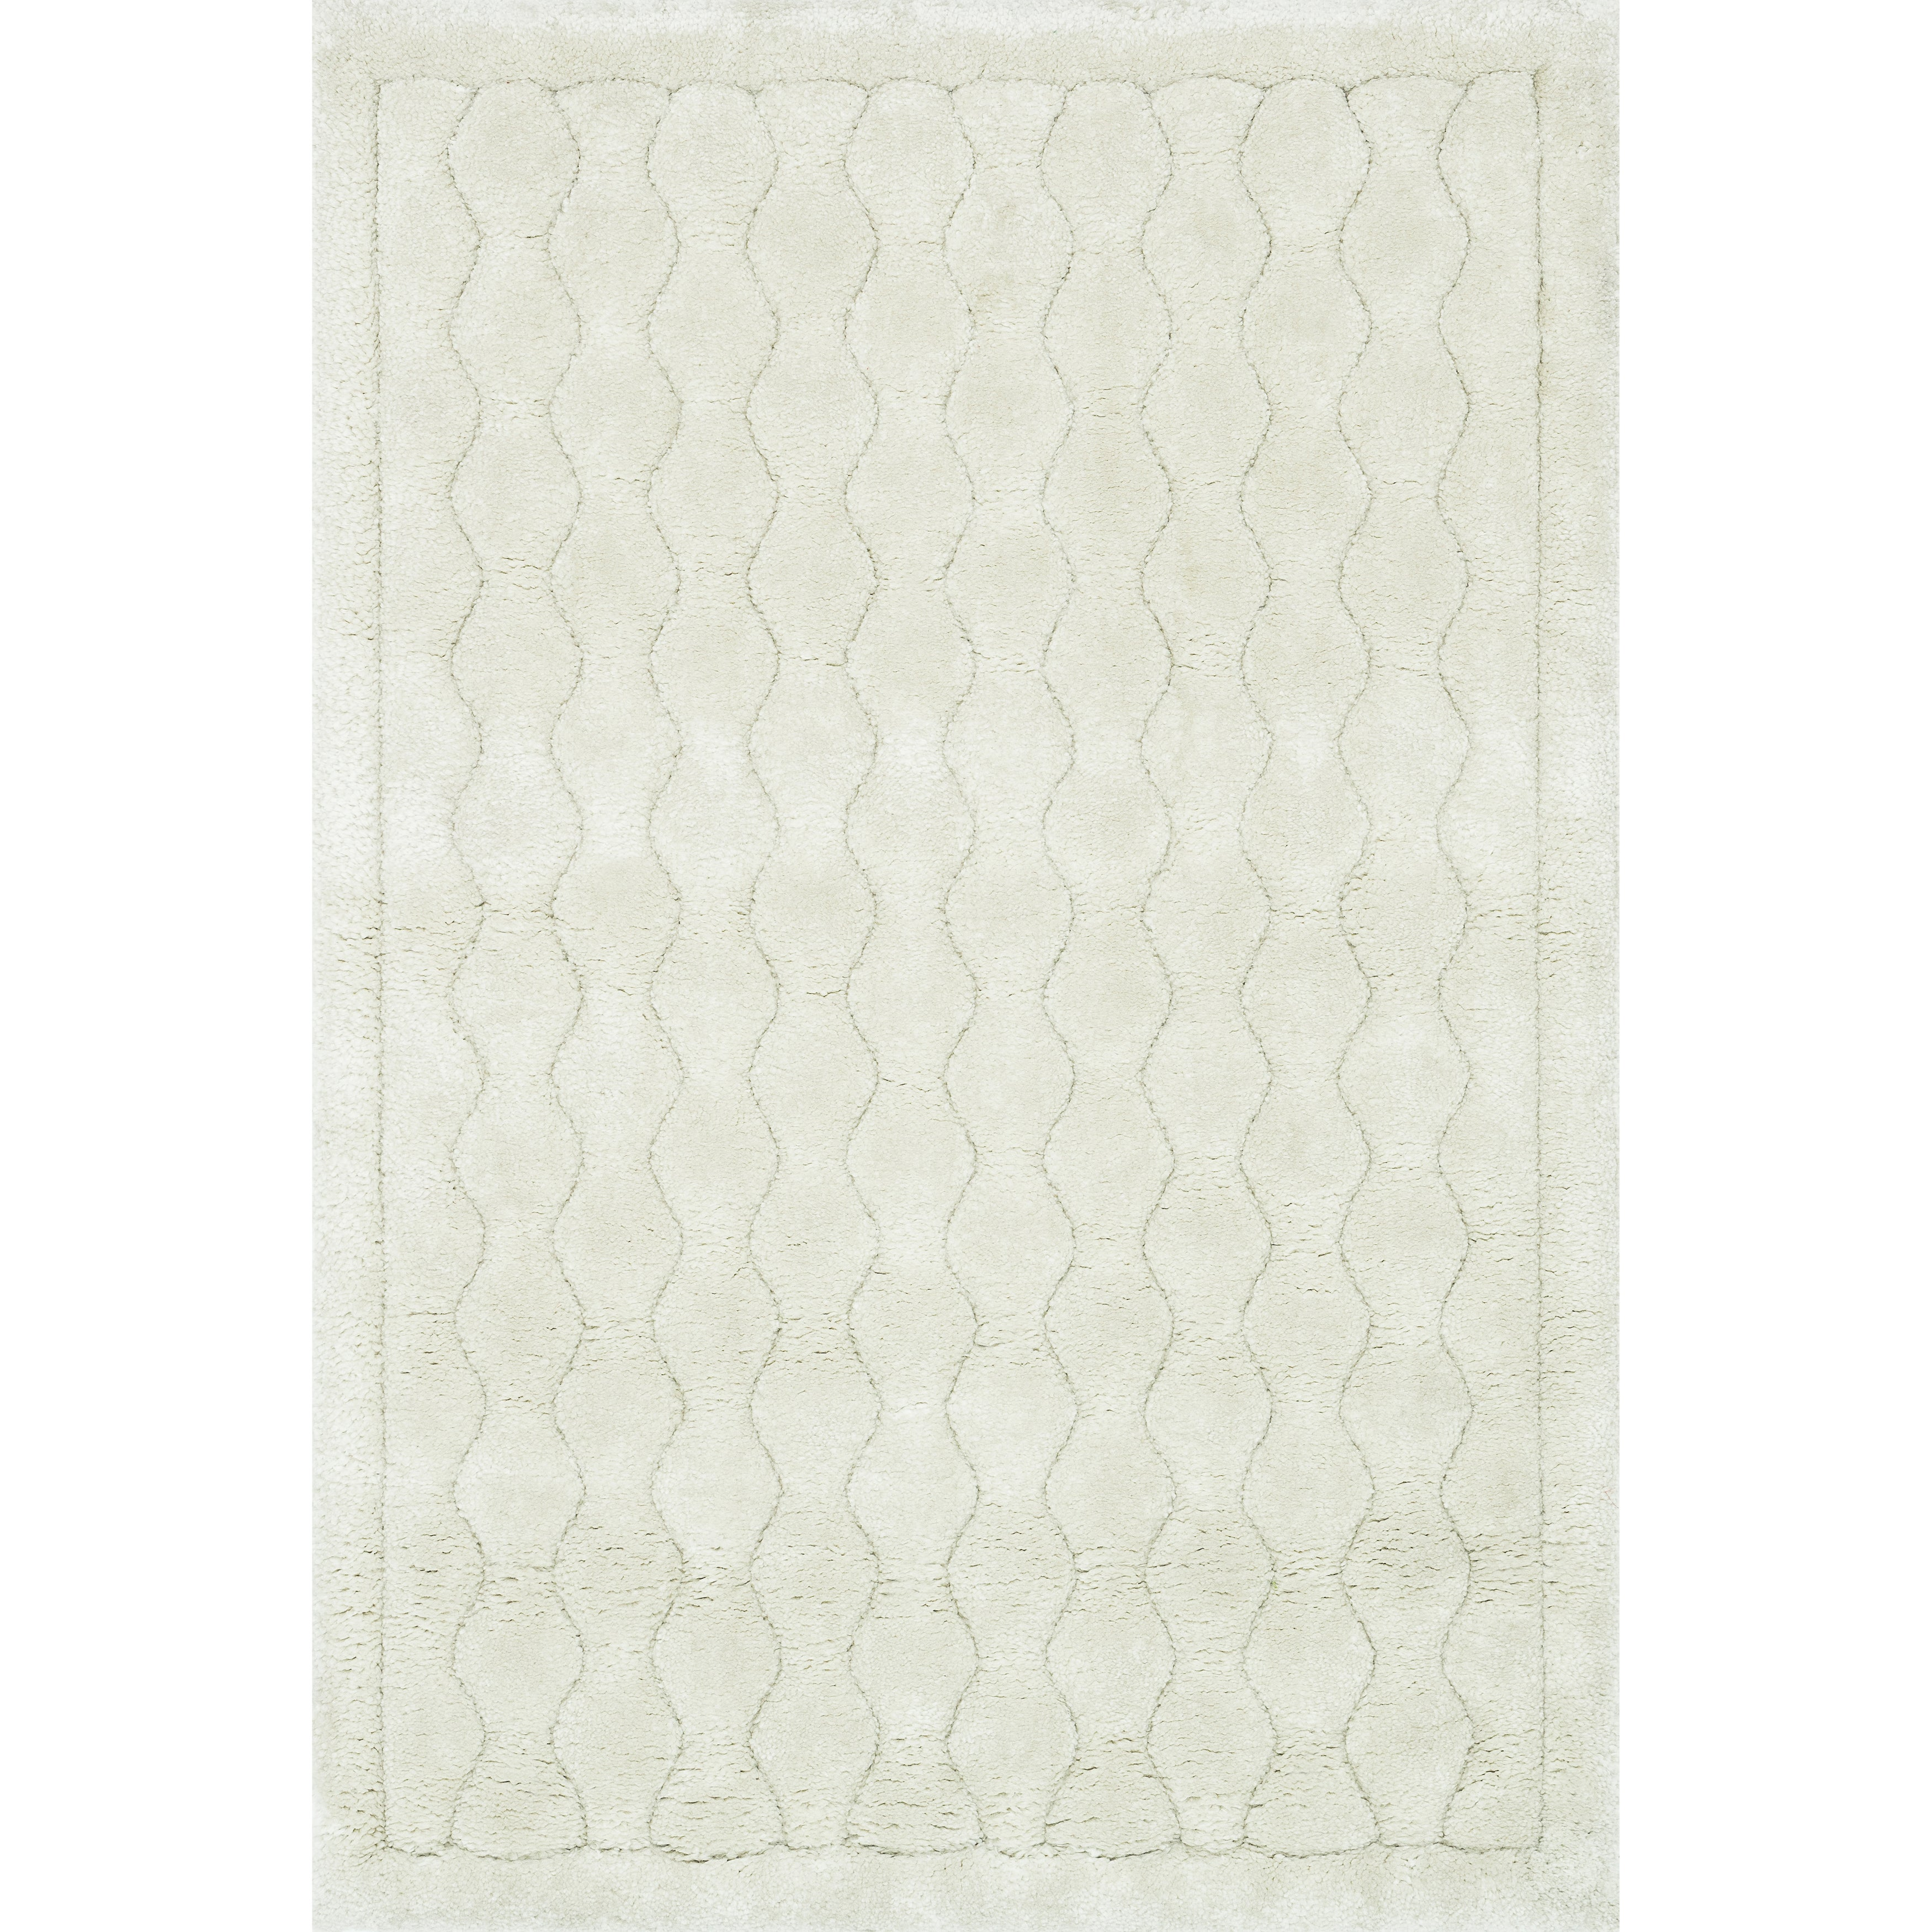 Machine Made Plush Shag Ivory Area Rug (3'9x5'6)